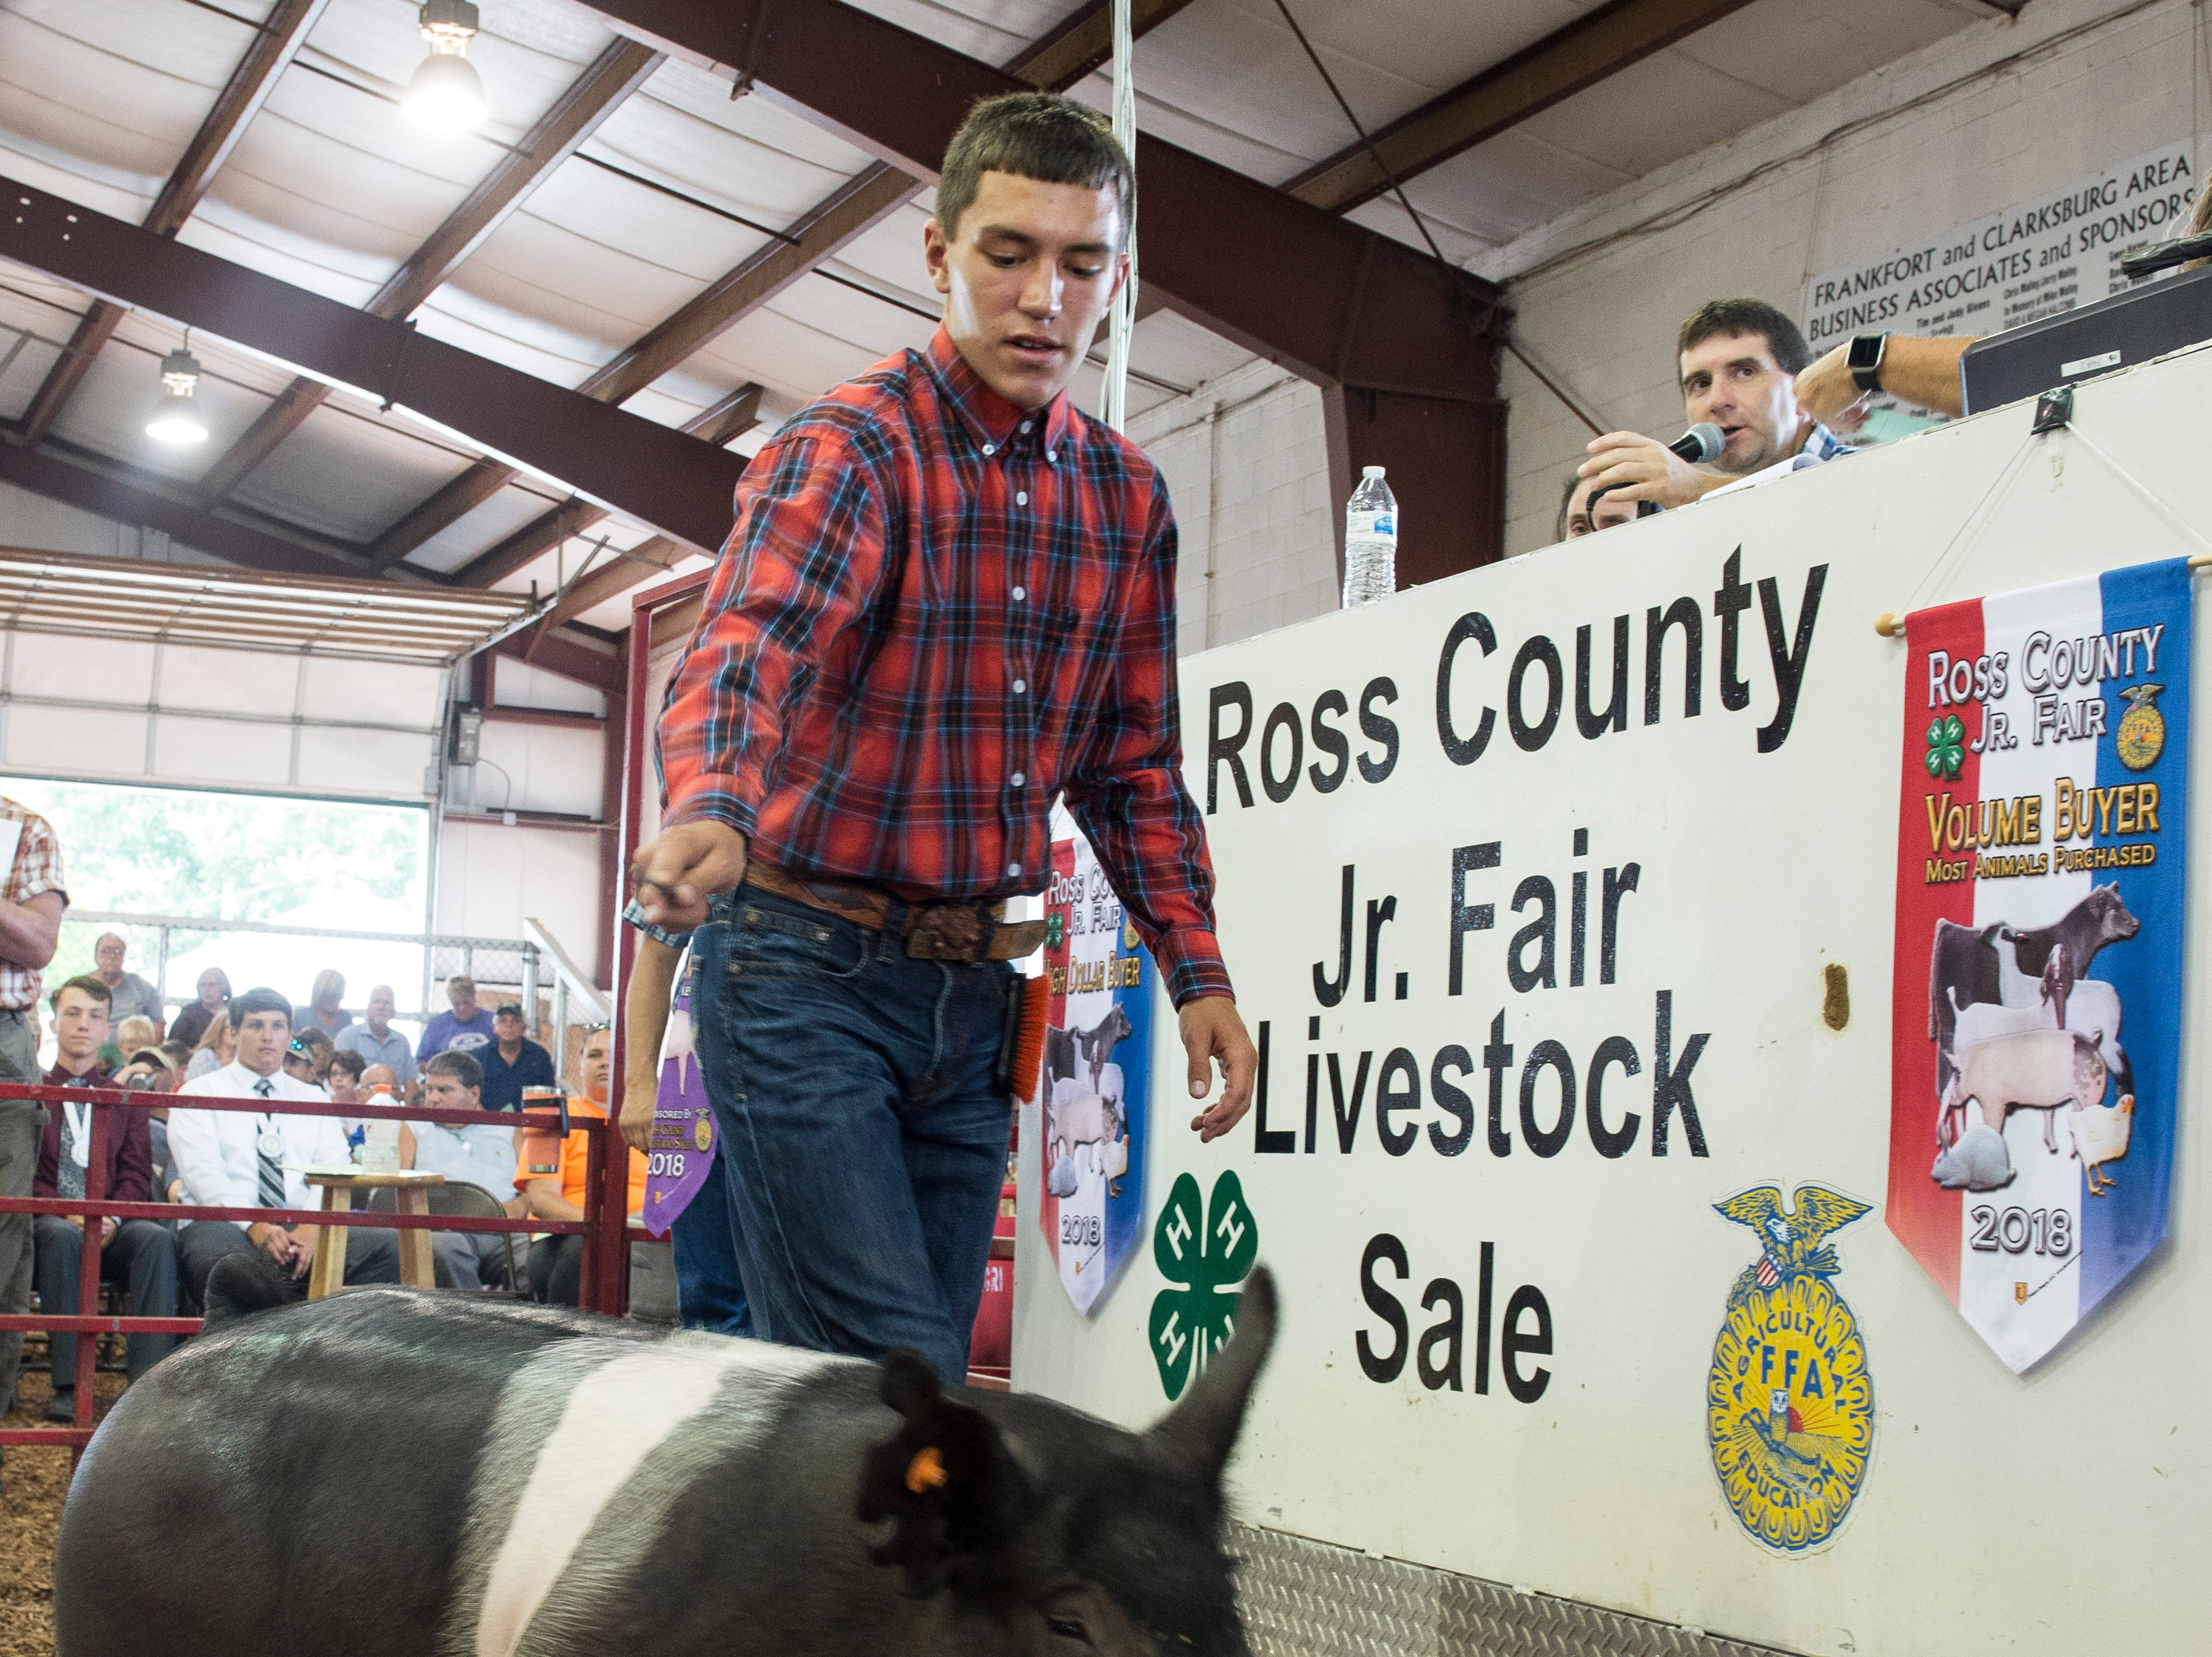 Garrett Simmons displays his 261-pound hog during the Junior Fair Swine Sale at the Ross County Fair on August 9, 2018 in Chillicothe, Ohio. The hog was selected as the 2018 Grand Champion Market Hog.